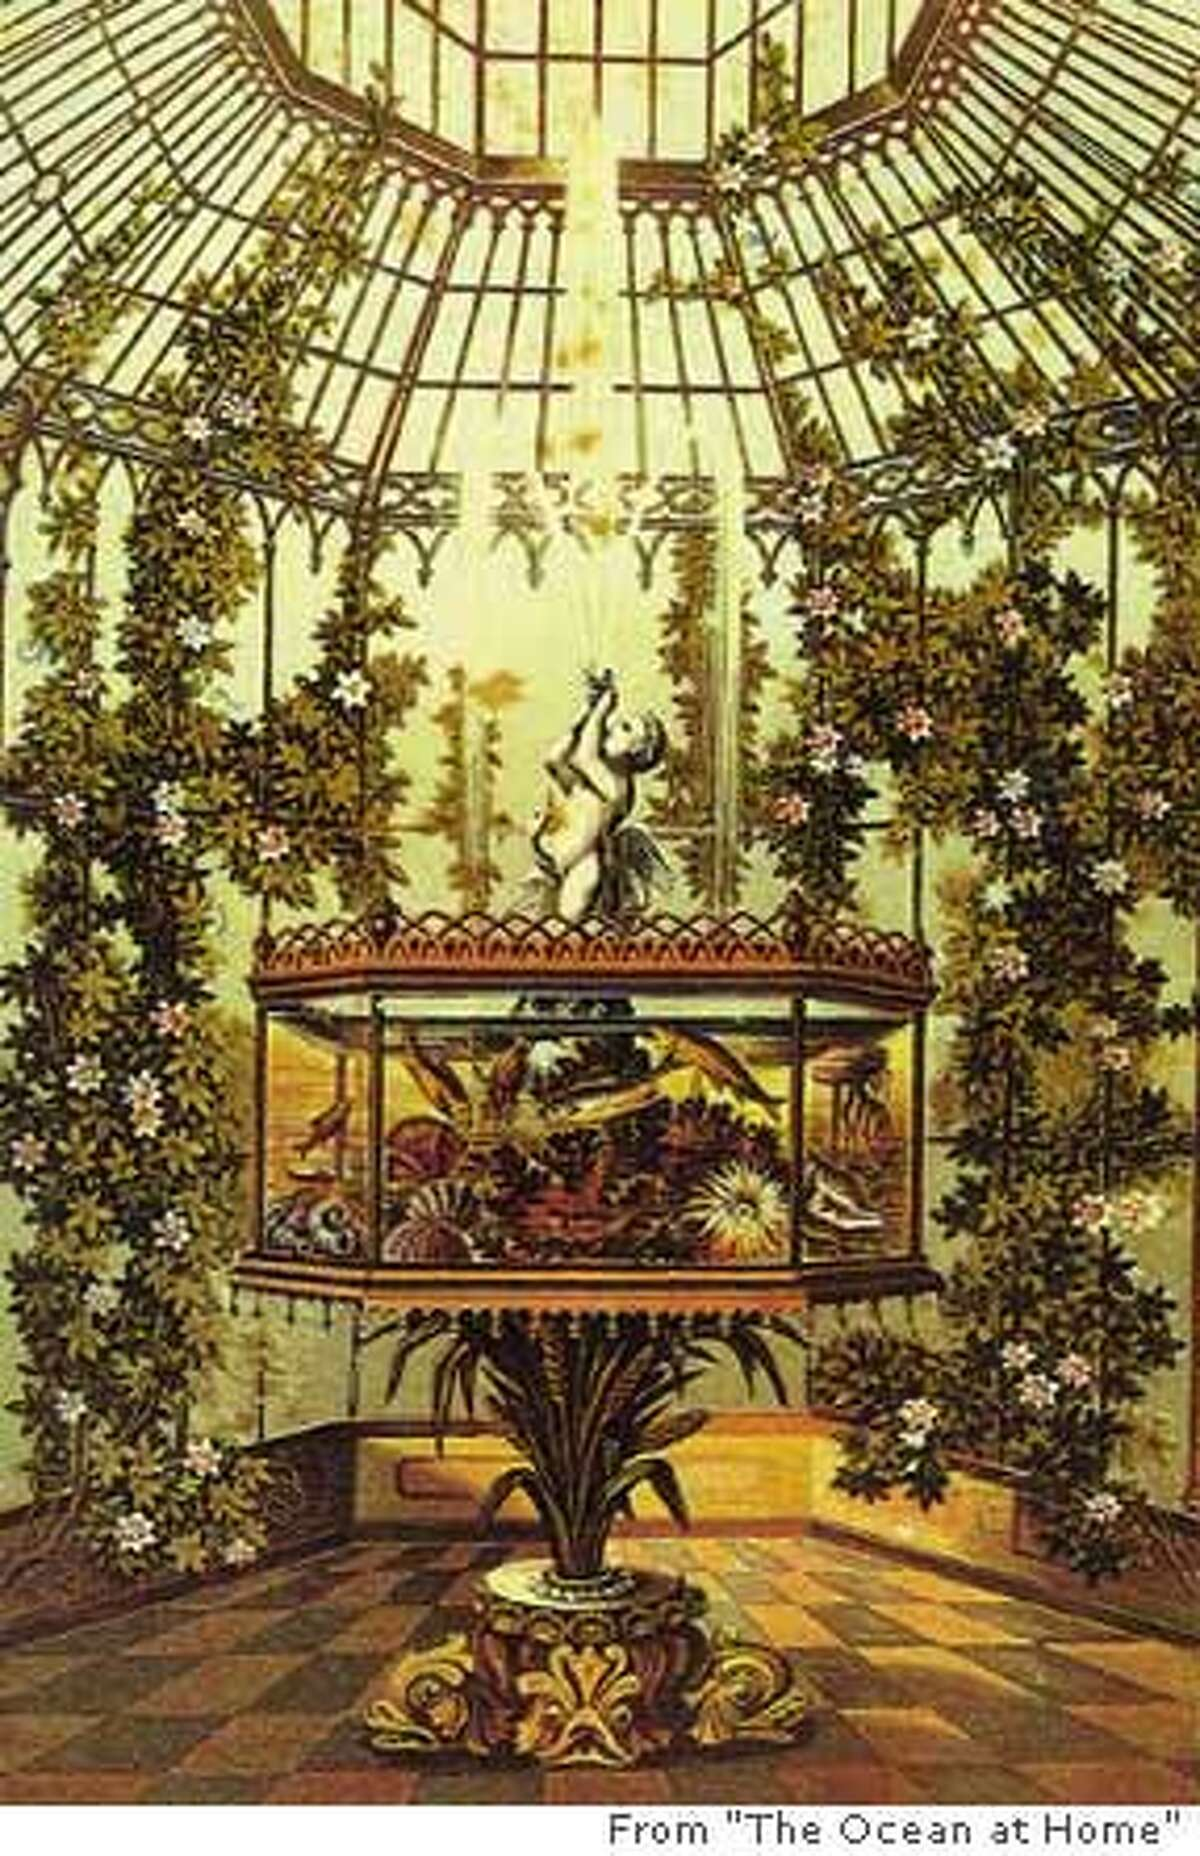 An aquarium, the television set of the 19th century, was the parlor trophy; it was richly decorated and given pride of place. Photo from